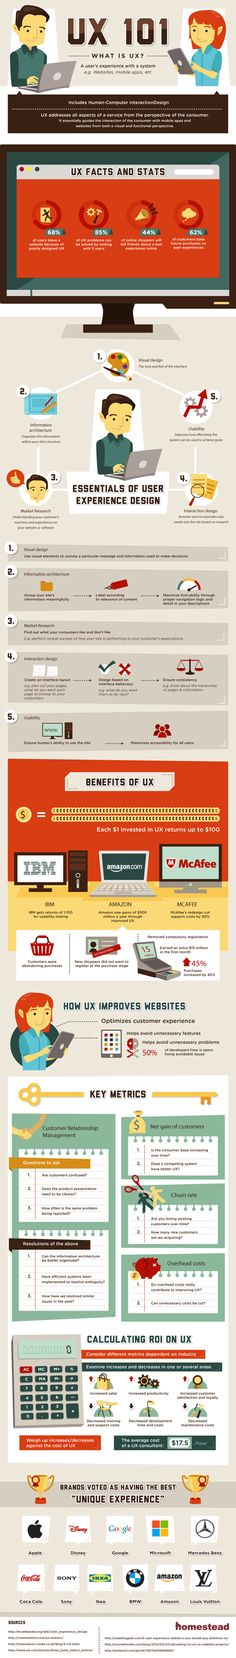 10 Cool User Experience Infographics to Check Out